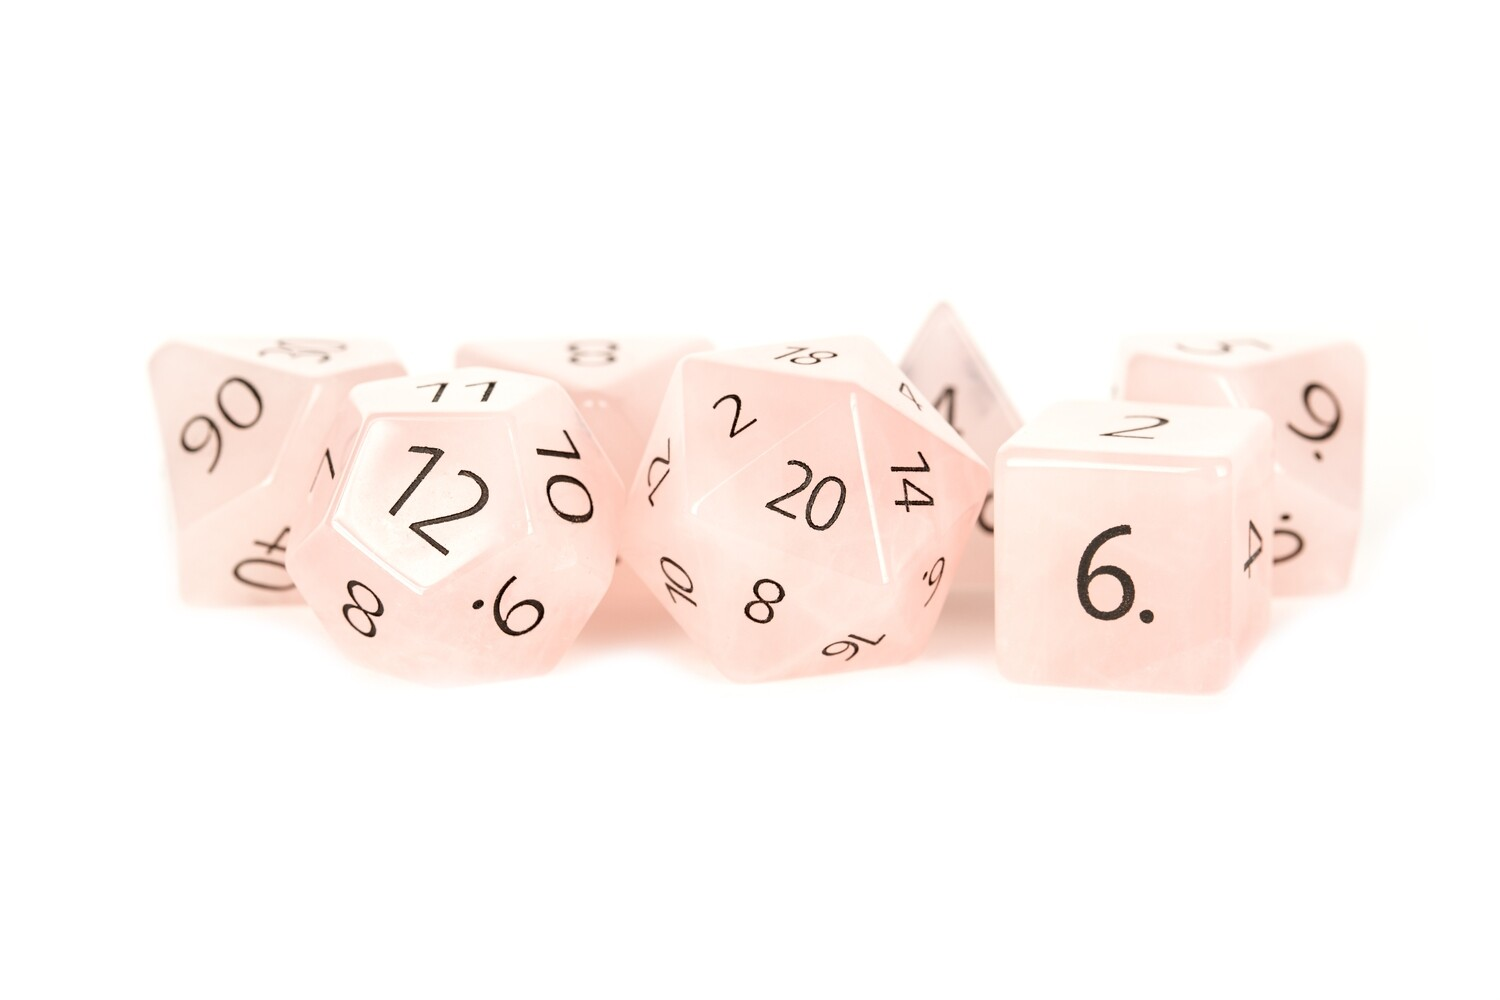 Engraved Rose Quartz: Full-Sized 16mm Polyhedral Dice Set RPG Tabletop CCG Games